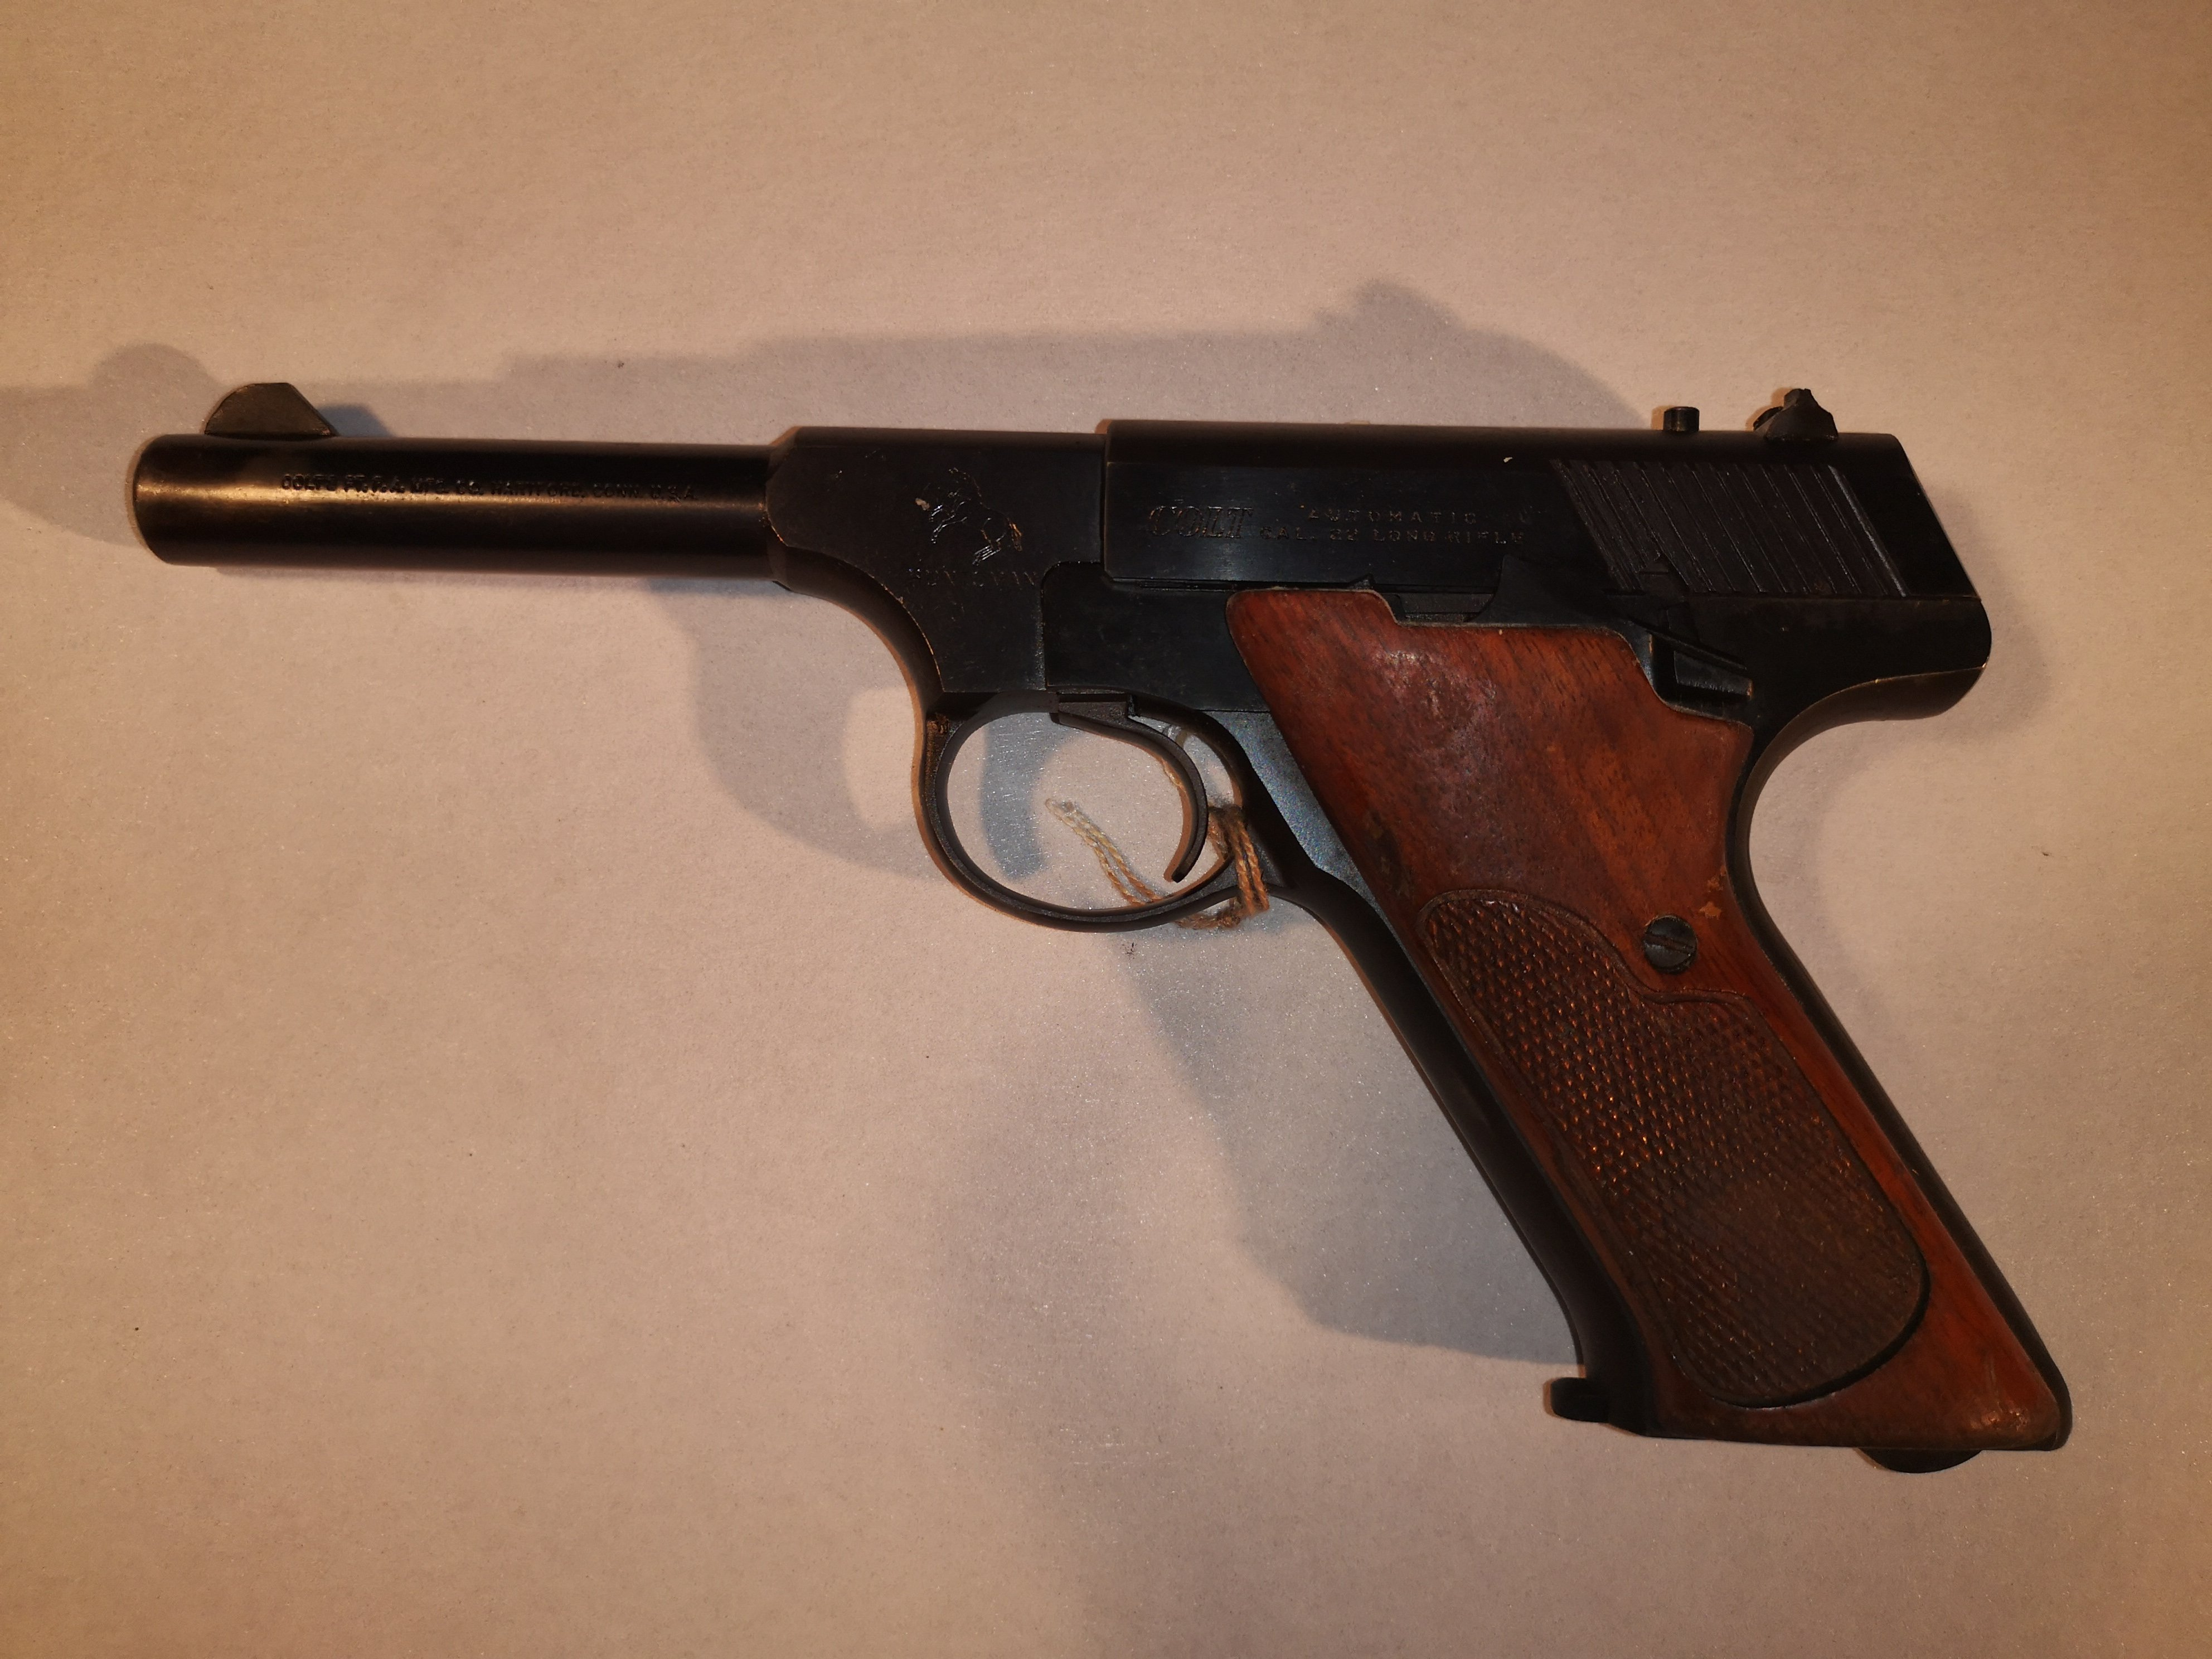 Colt Model Huntsman - kal. .22LR.